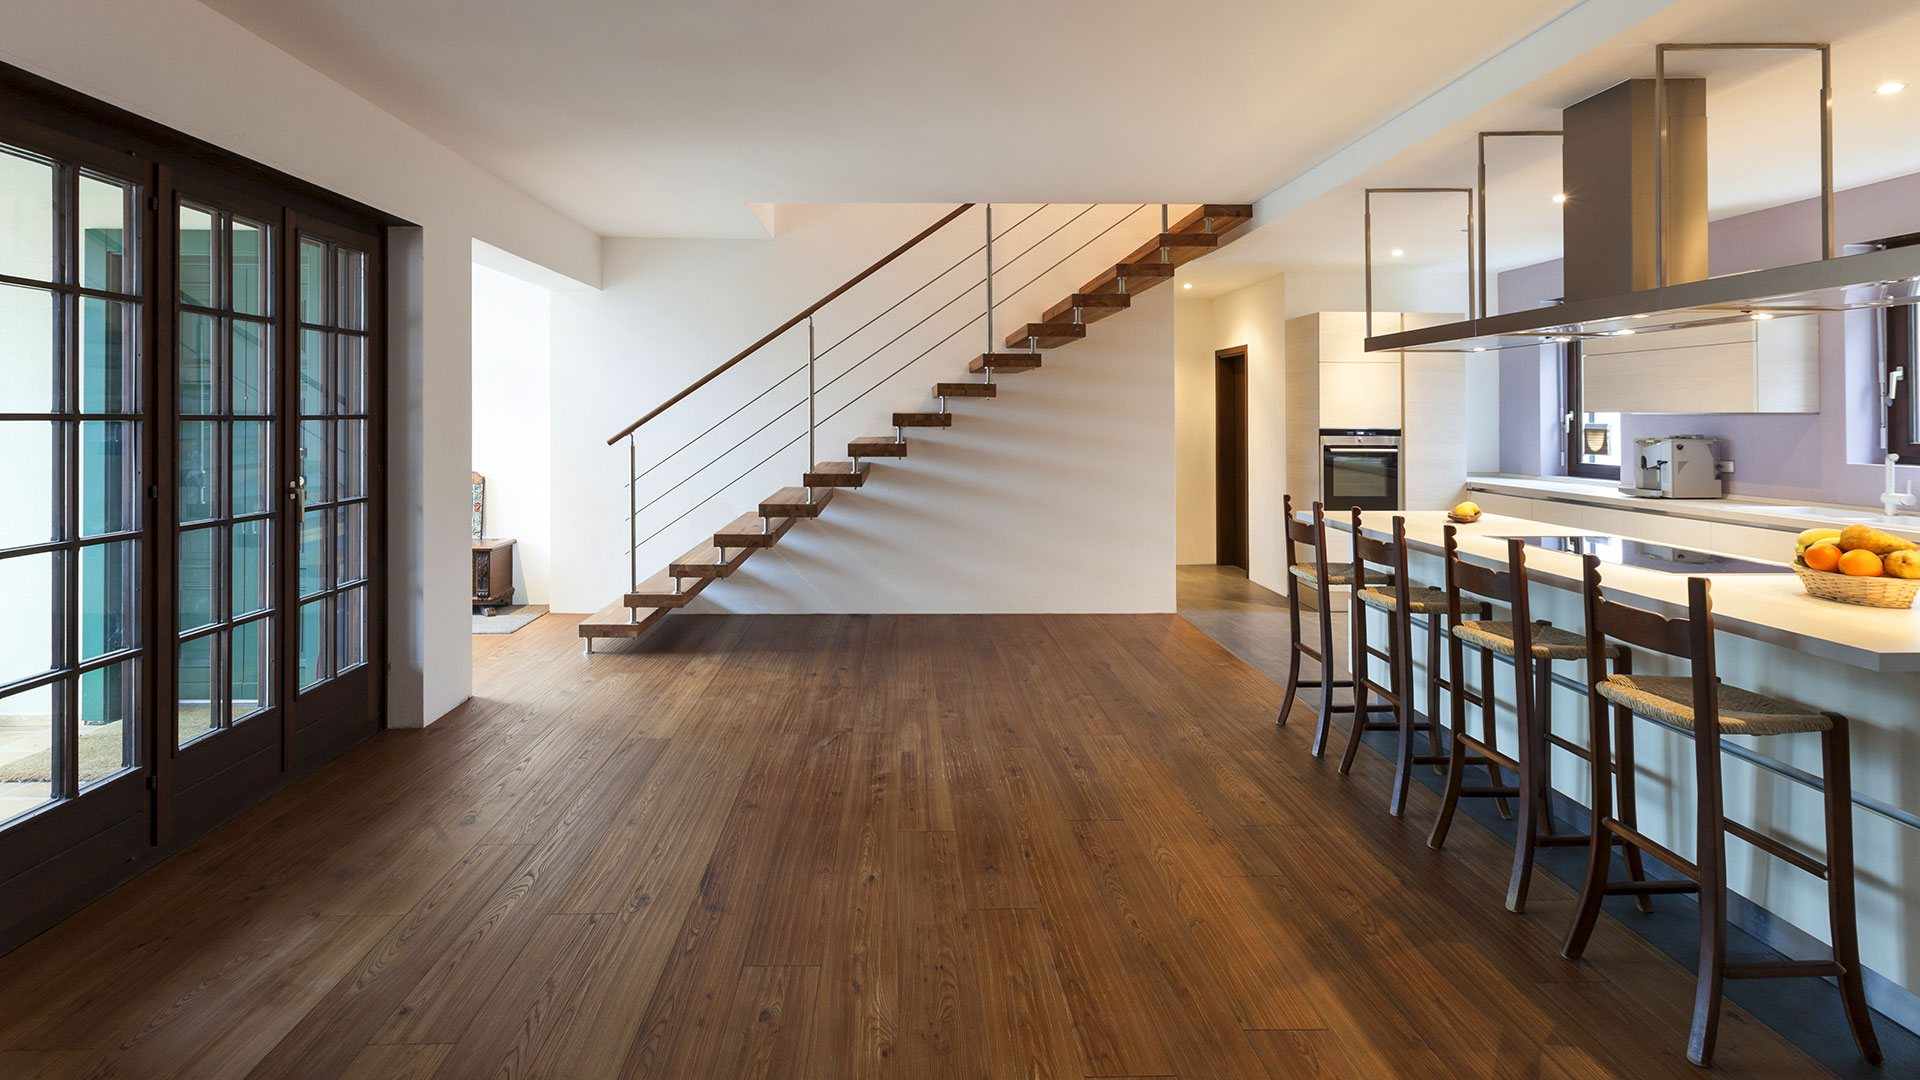 Home | Fort Myers Carpenter, Drywall and Painting